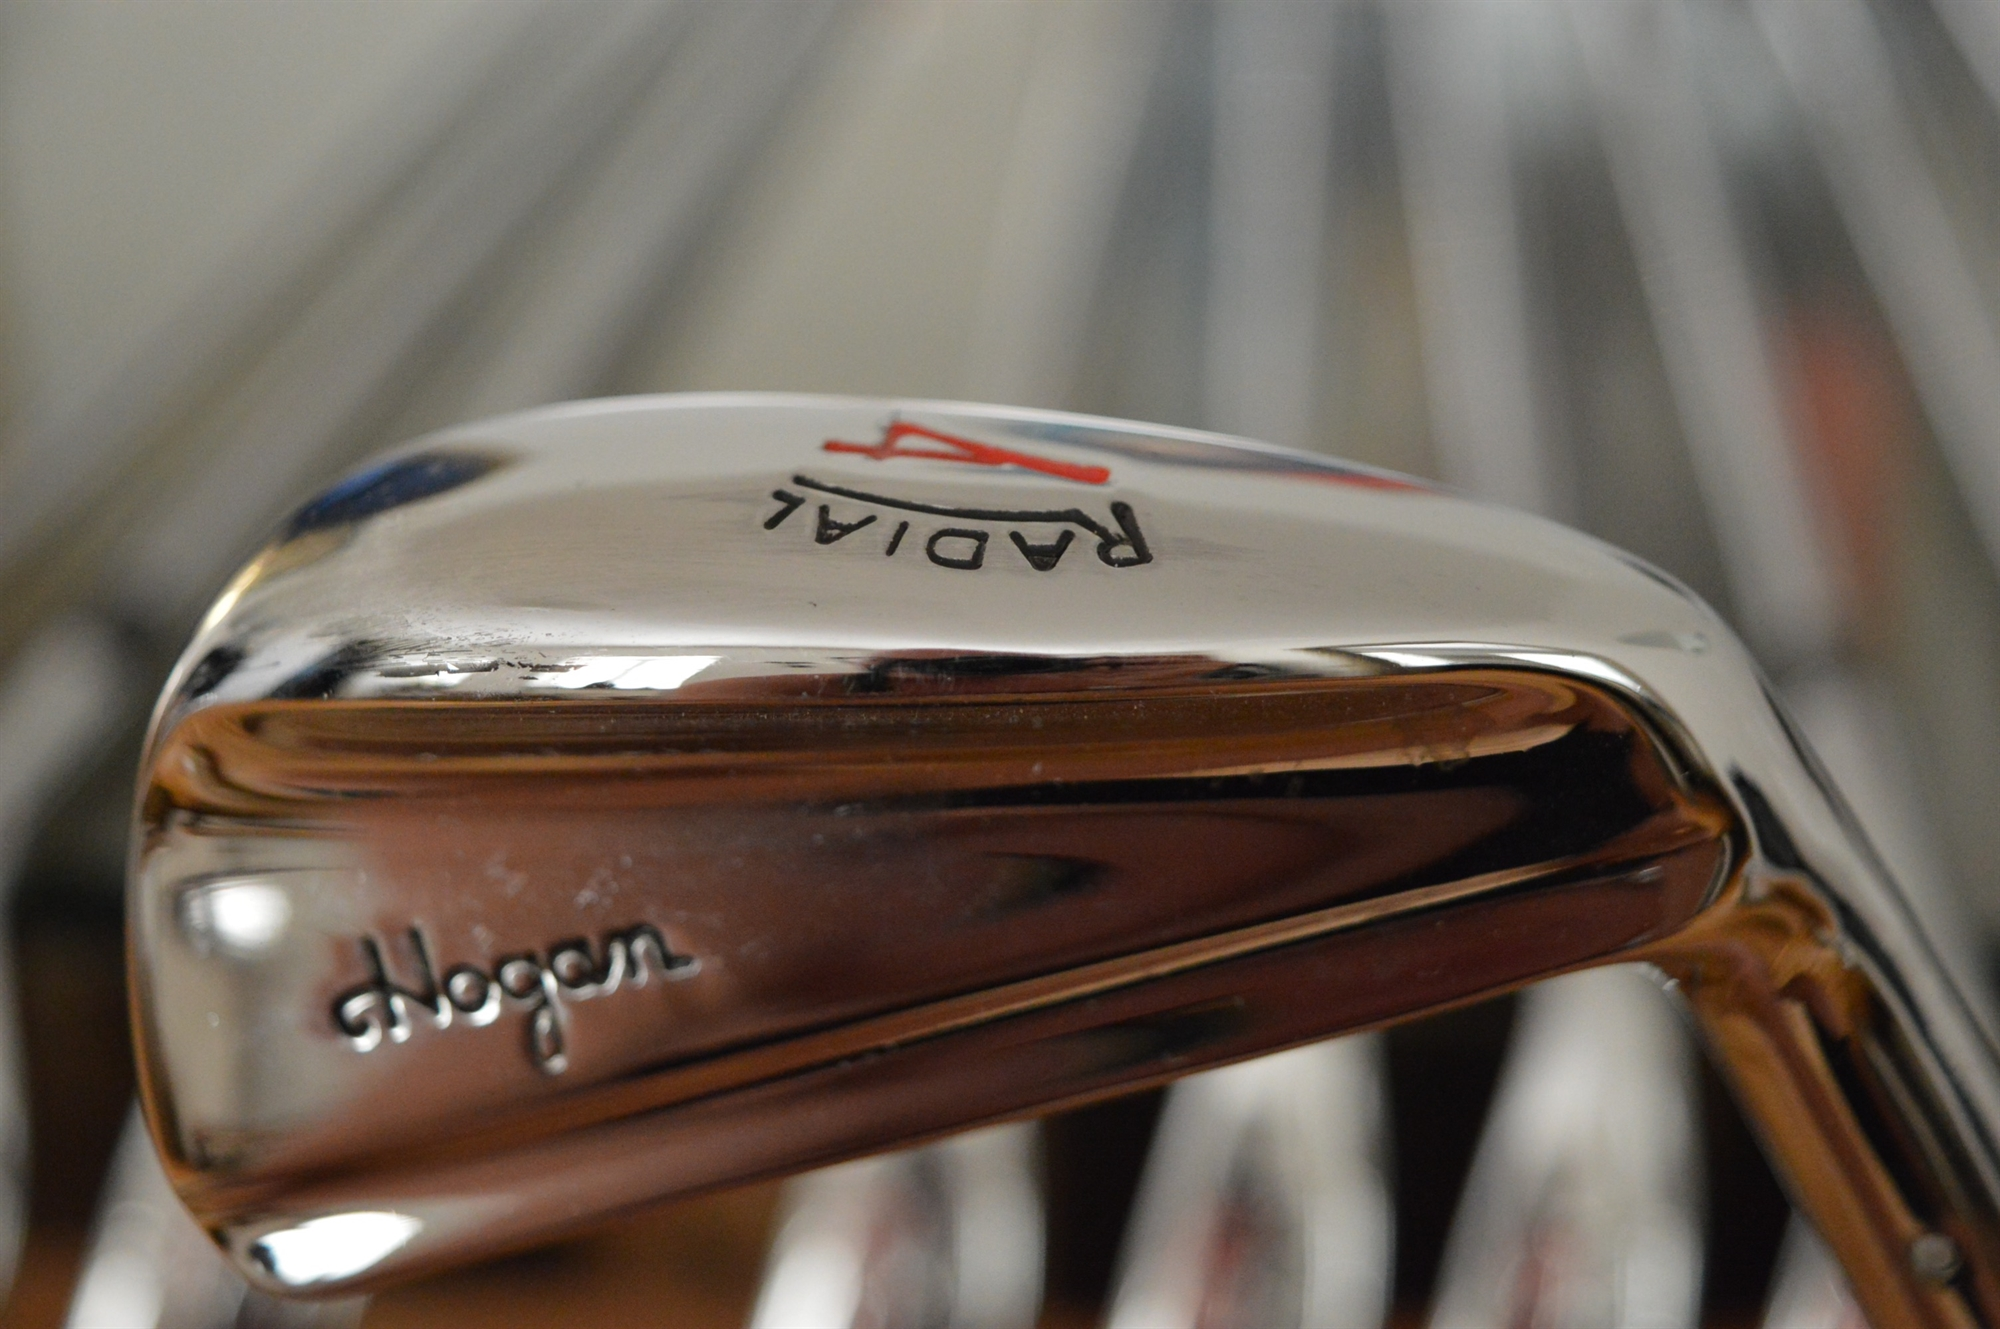 Ben Hogan Forged Iron Set 1/E - 1983 RADIAL 1/E complete set - refurbished